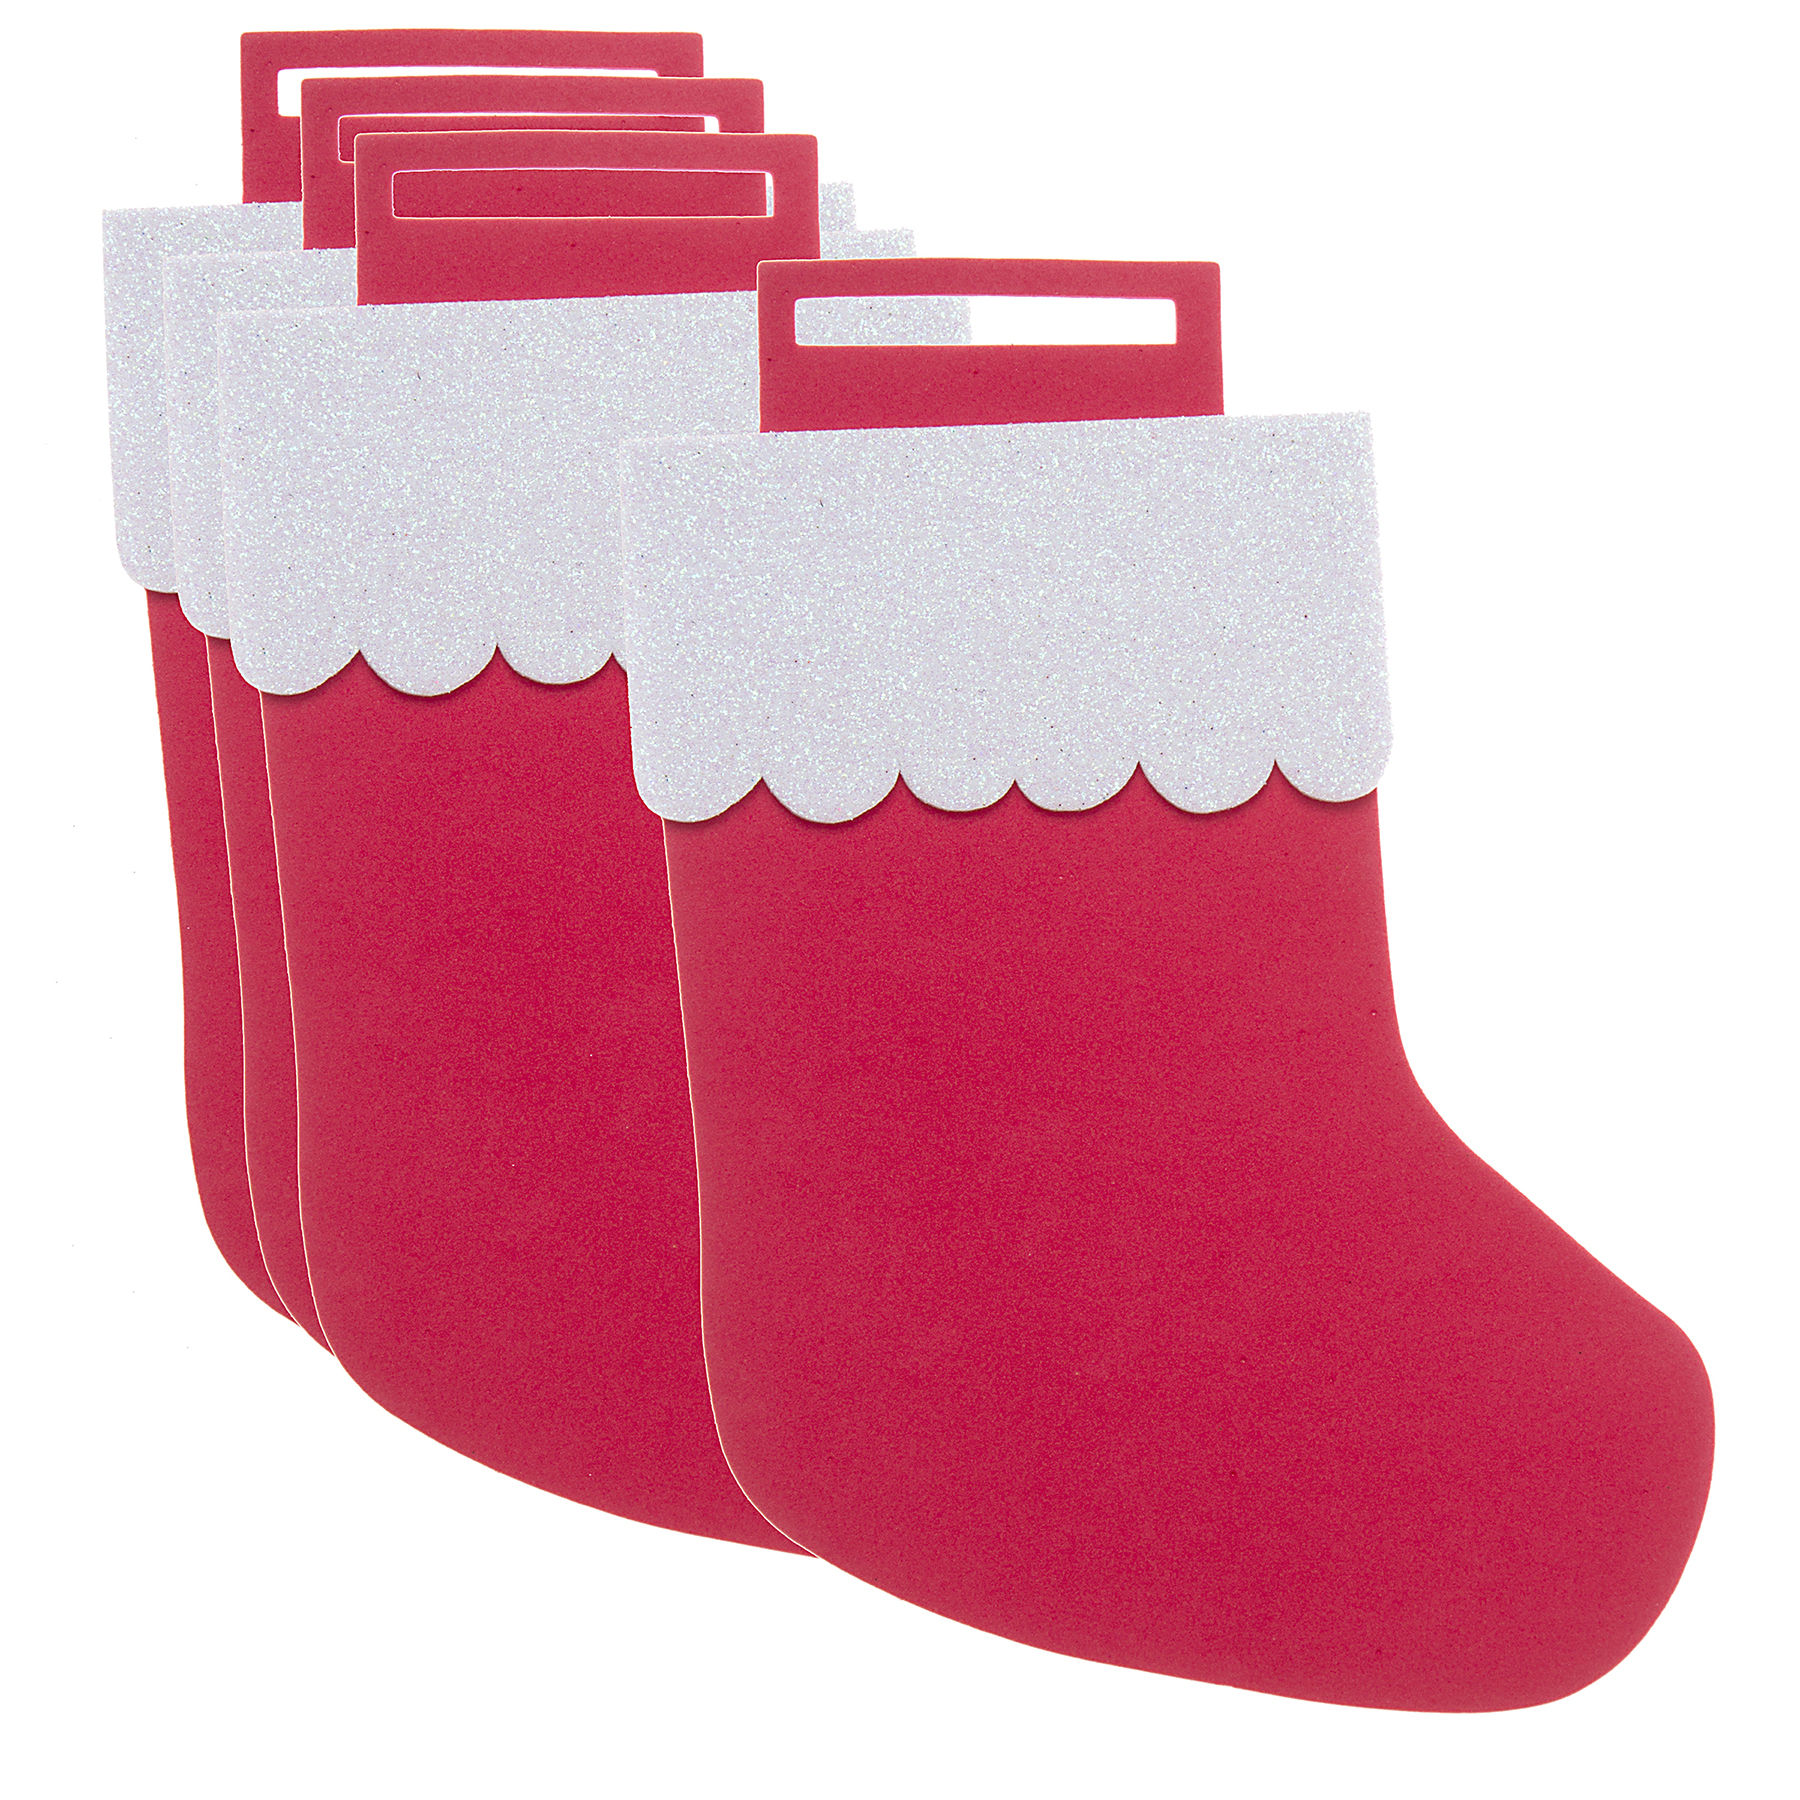 Find the Christmas Stocking Foam Shapes By Creatology® at Michaels